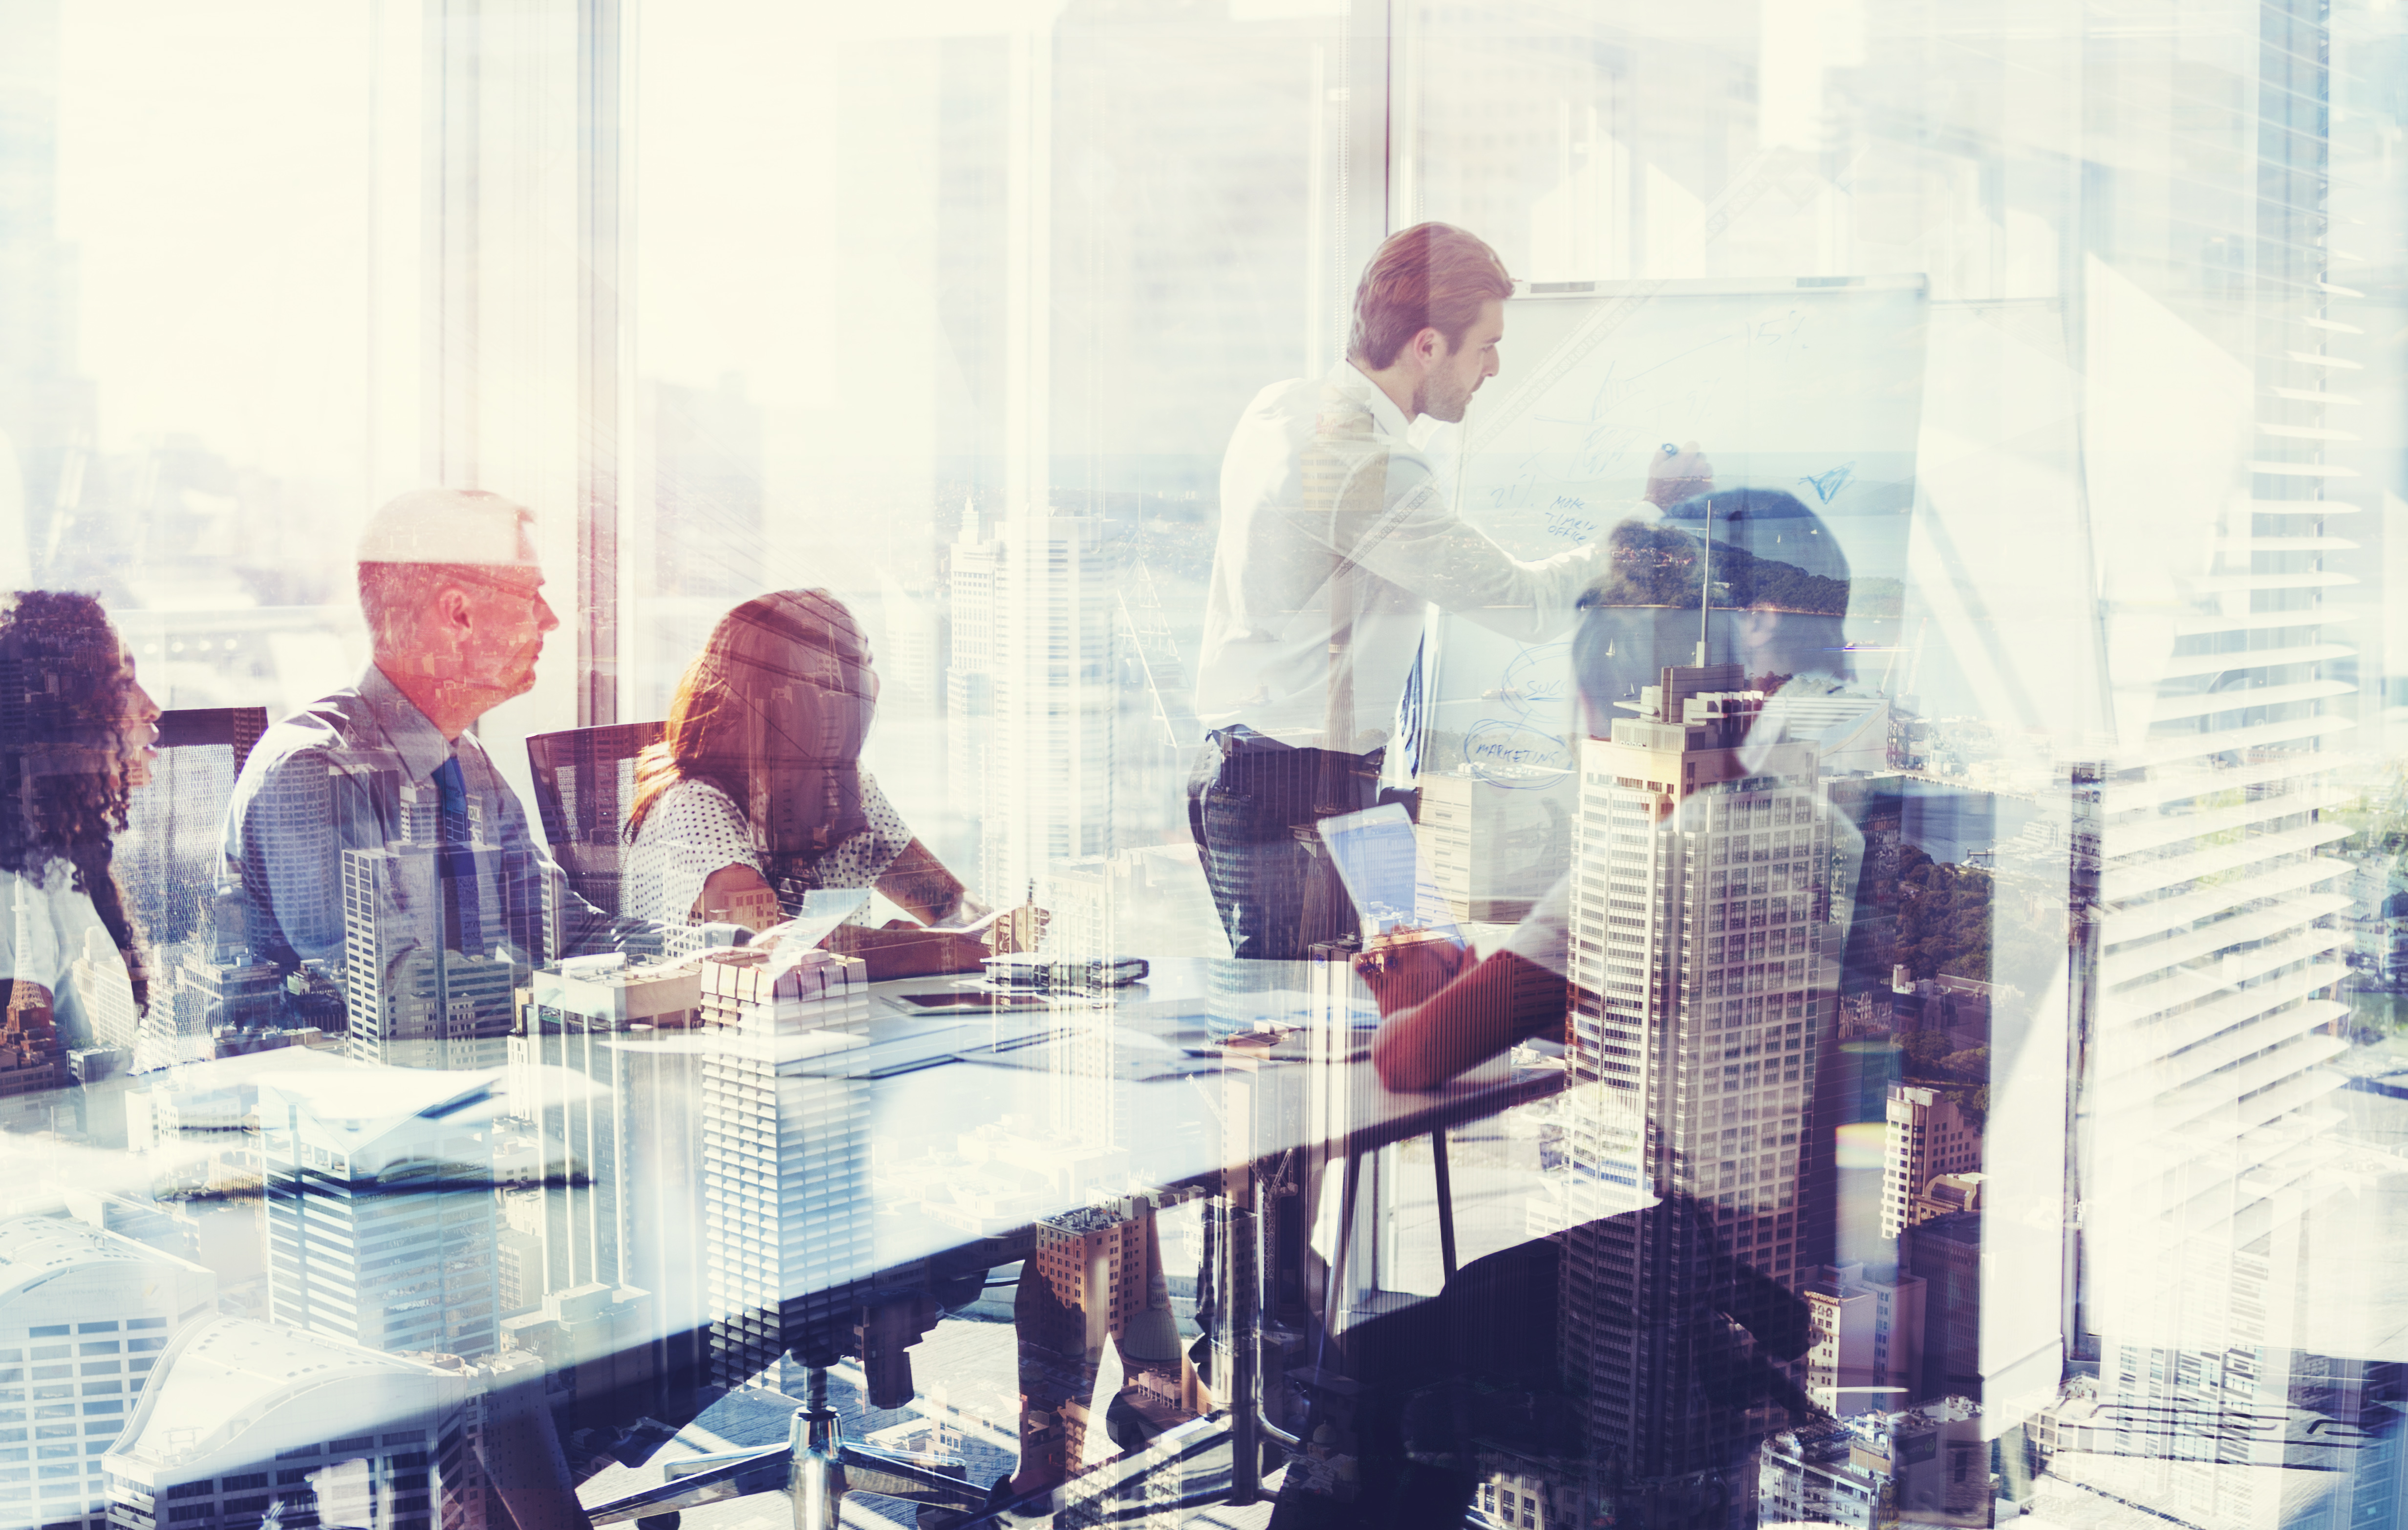 Montage of a team of business people at a presentation at the boardroom table. There are several buildings in an overlaid cityscape. There is also motion blurred traffic on a roadway in the middle of the group. City is Sydney, Australia. Business development; growth and architecture